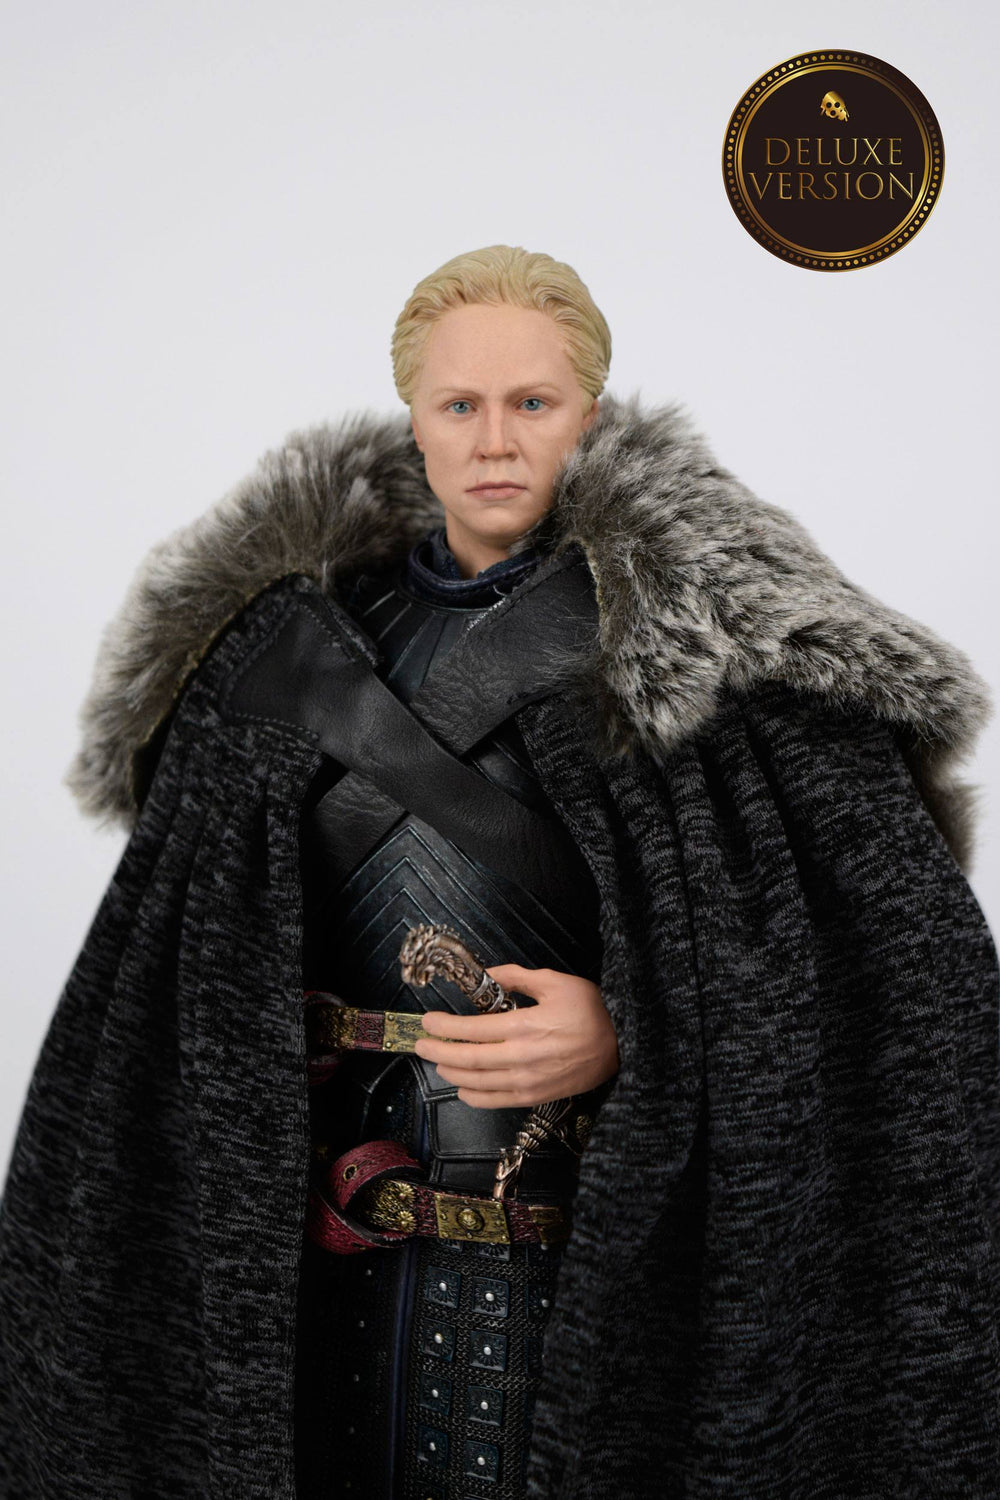 Threezero Game Of Thrones Brienne of Tarth Deluxe Version 1/6 Action Figure